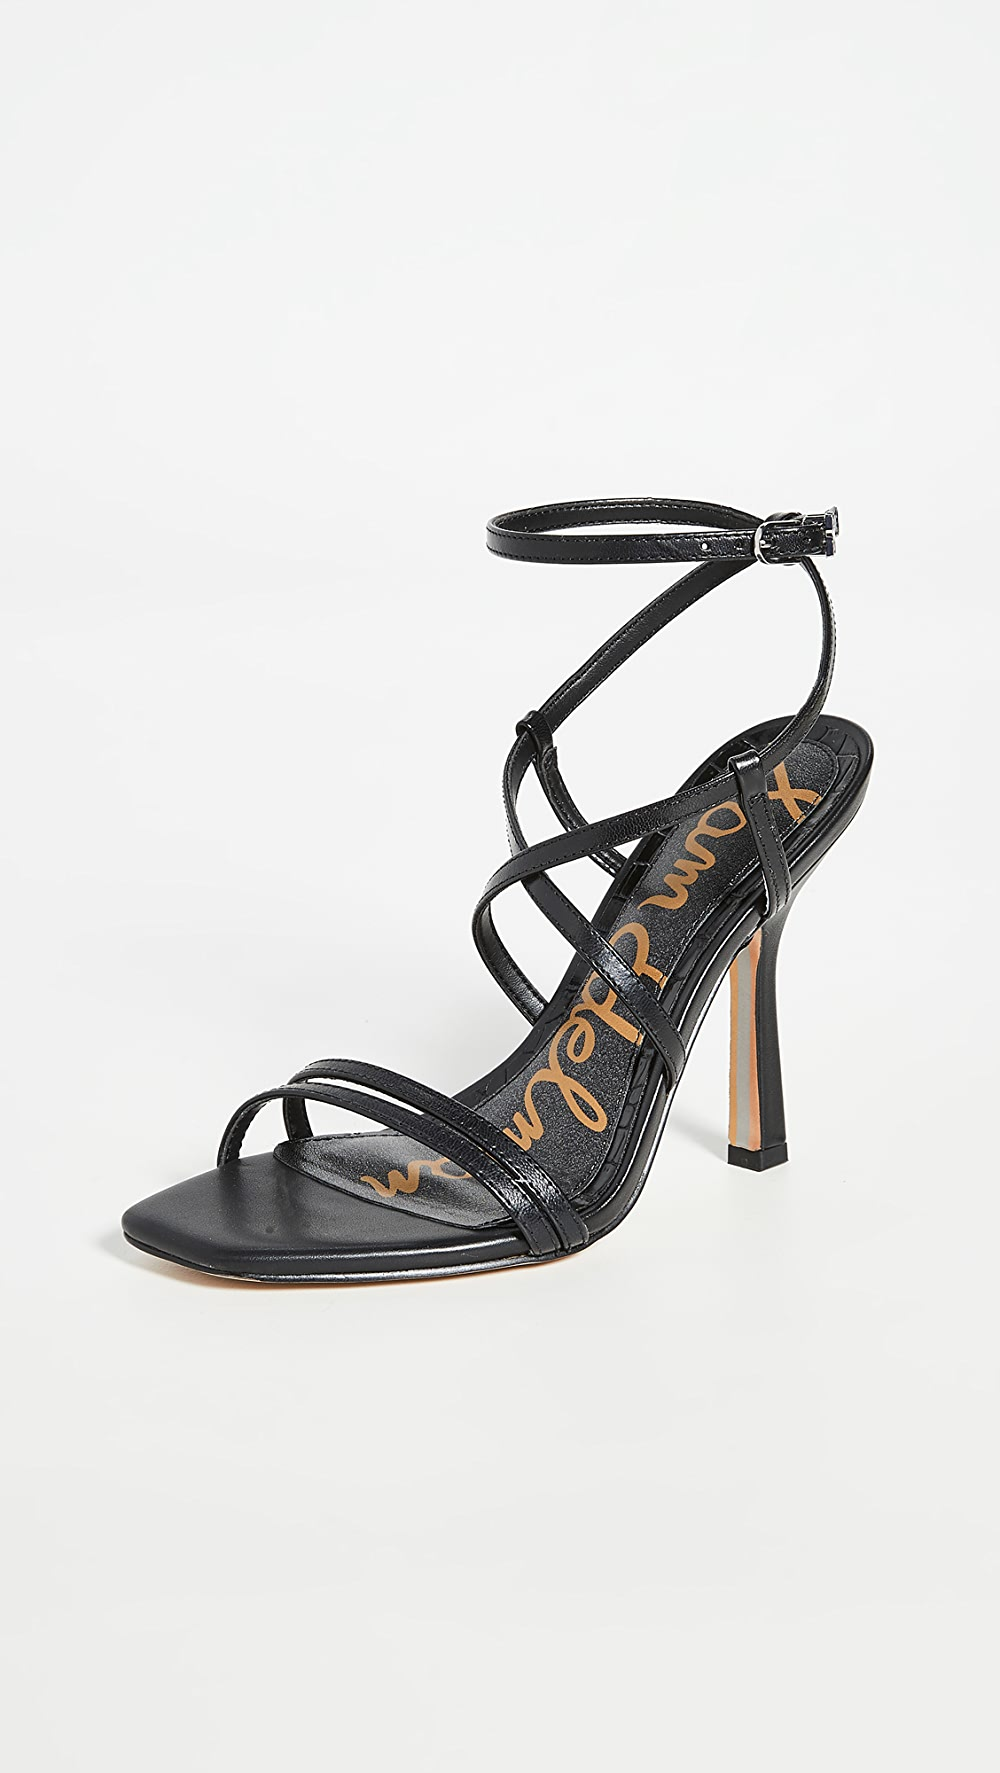 Industrious Sam Edelman - Leeanne Sandals To Make One Feel At Ease And Energetic